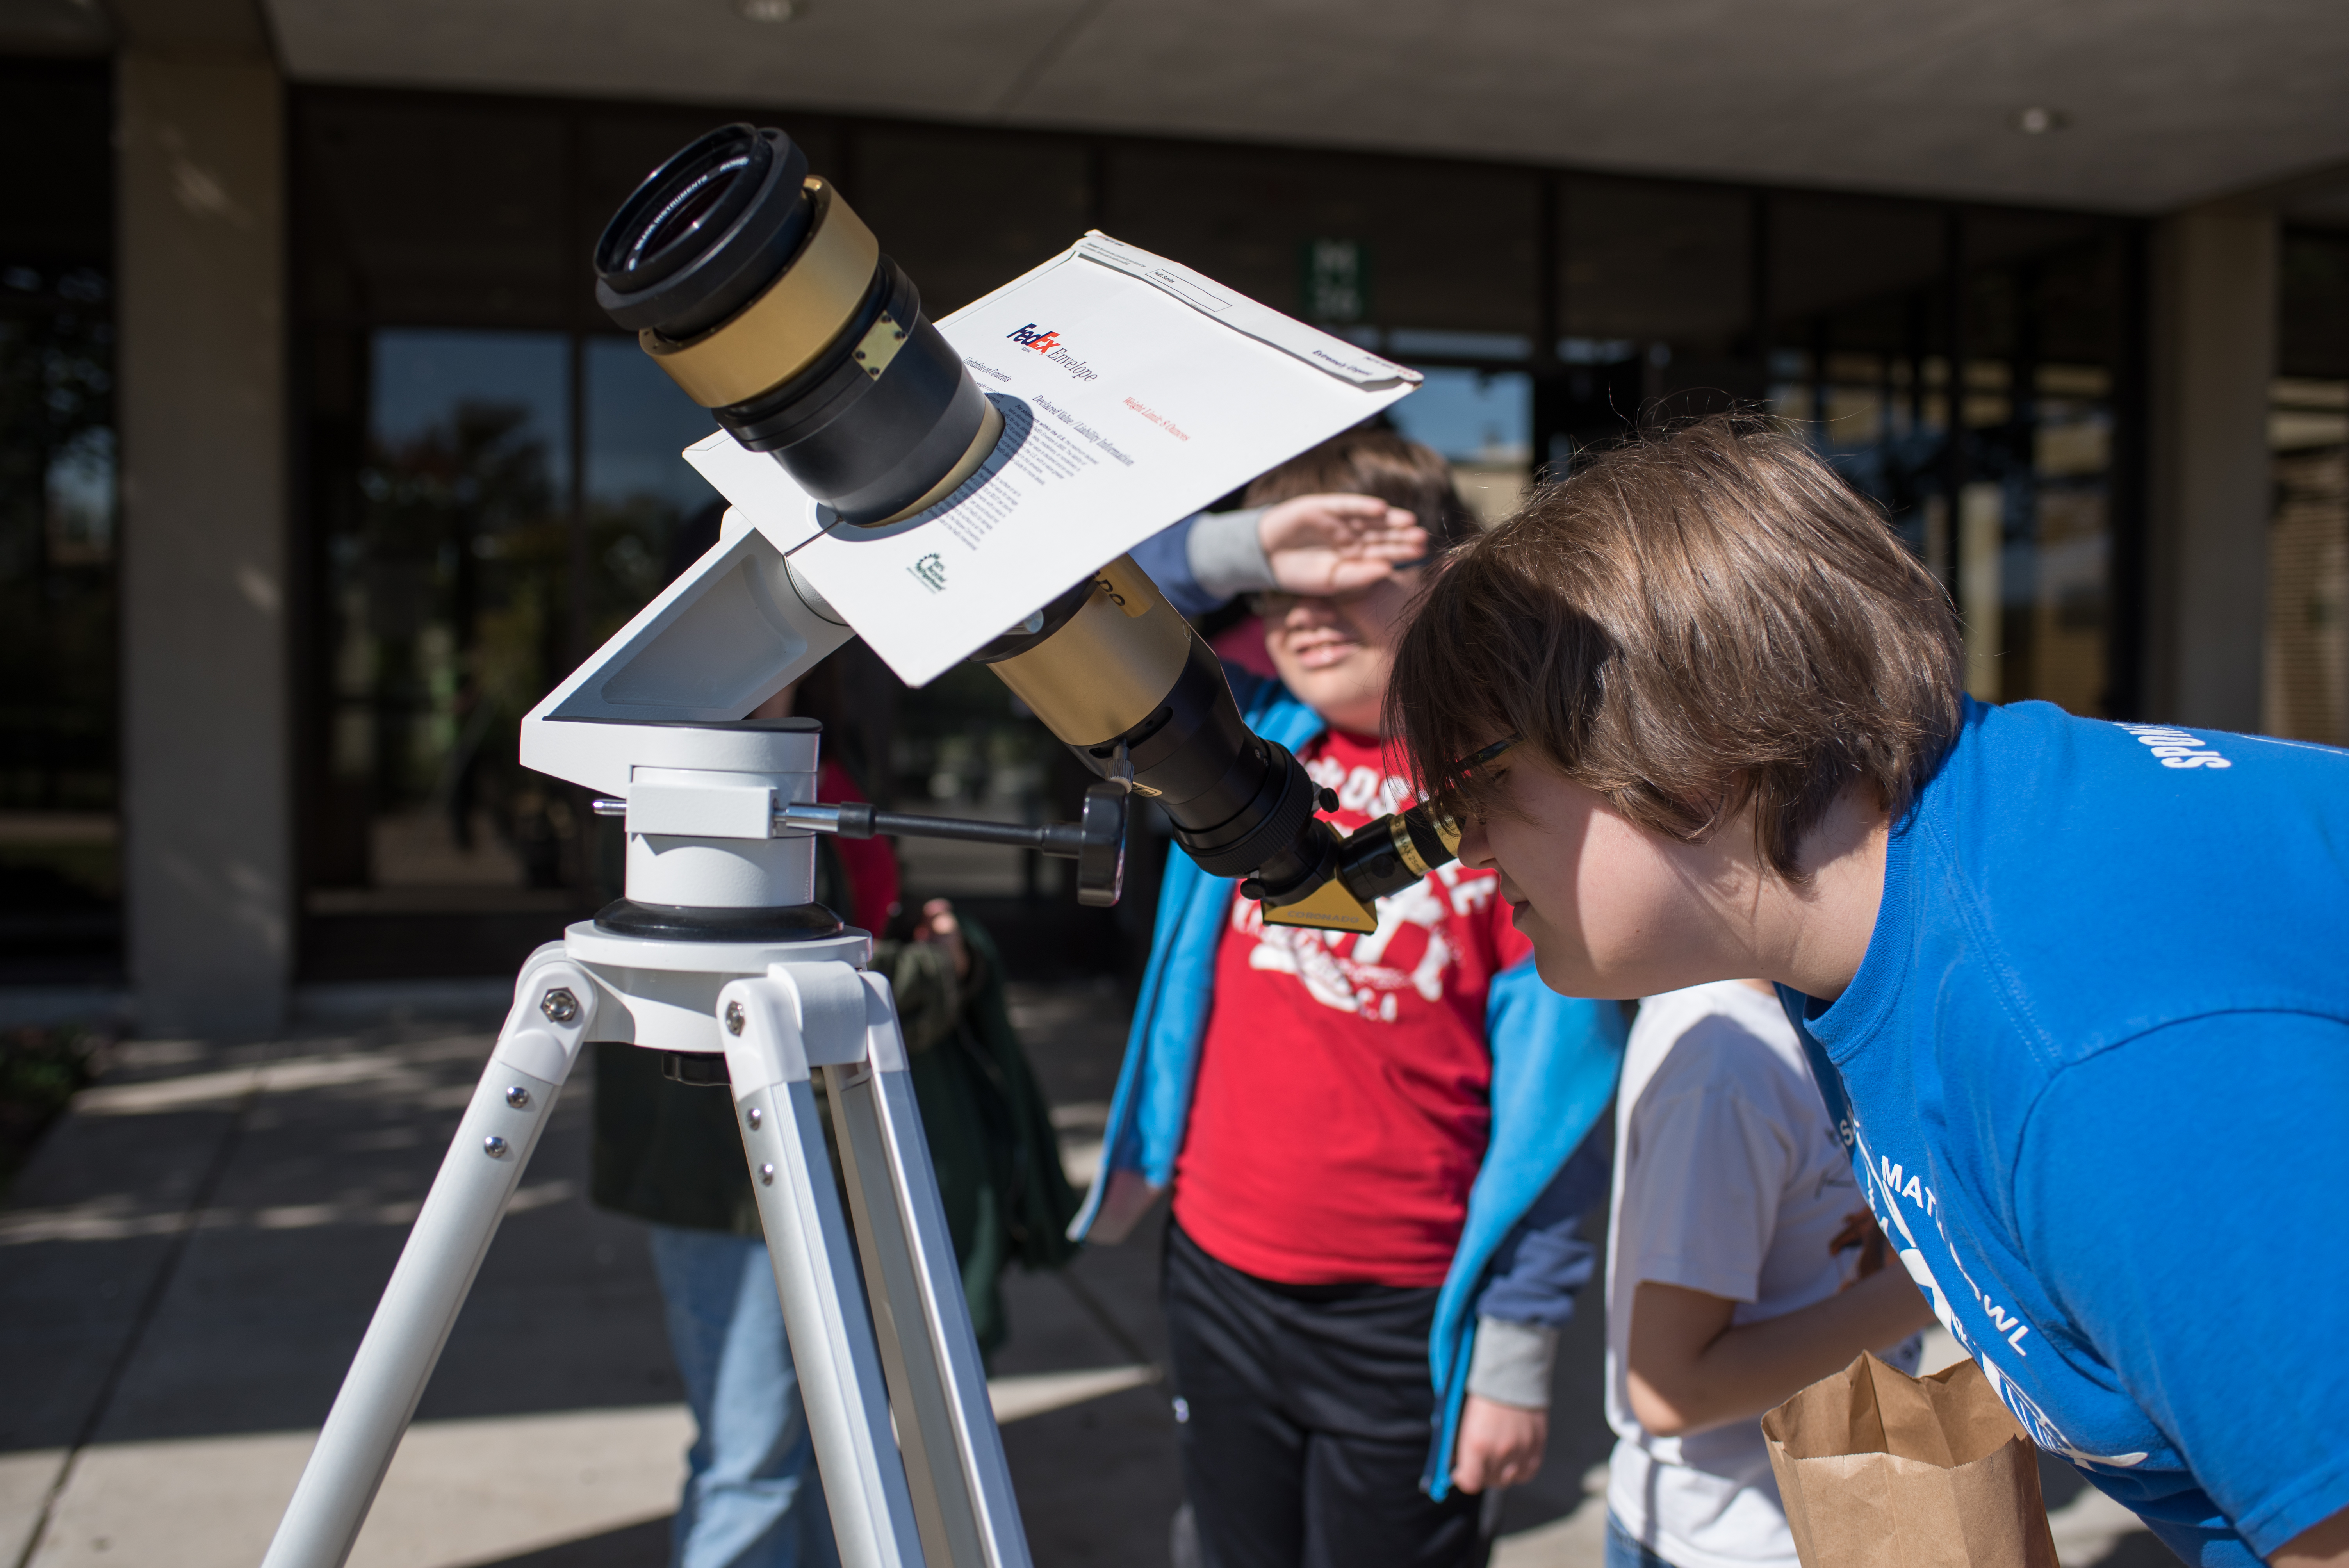 Students visiting Prairie State College (PSC) take turns looking at the sun through a solar telescope during the STEM@PSC iDiscover STEM Fun Day event.